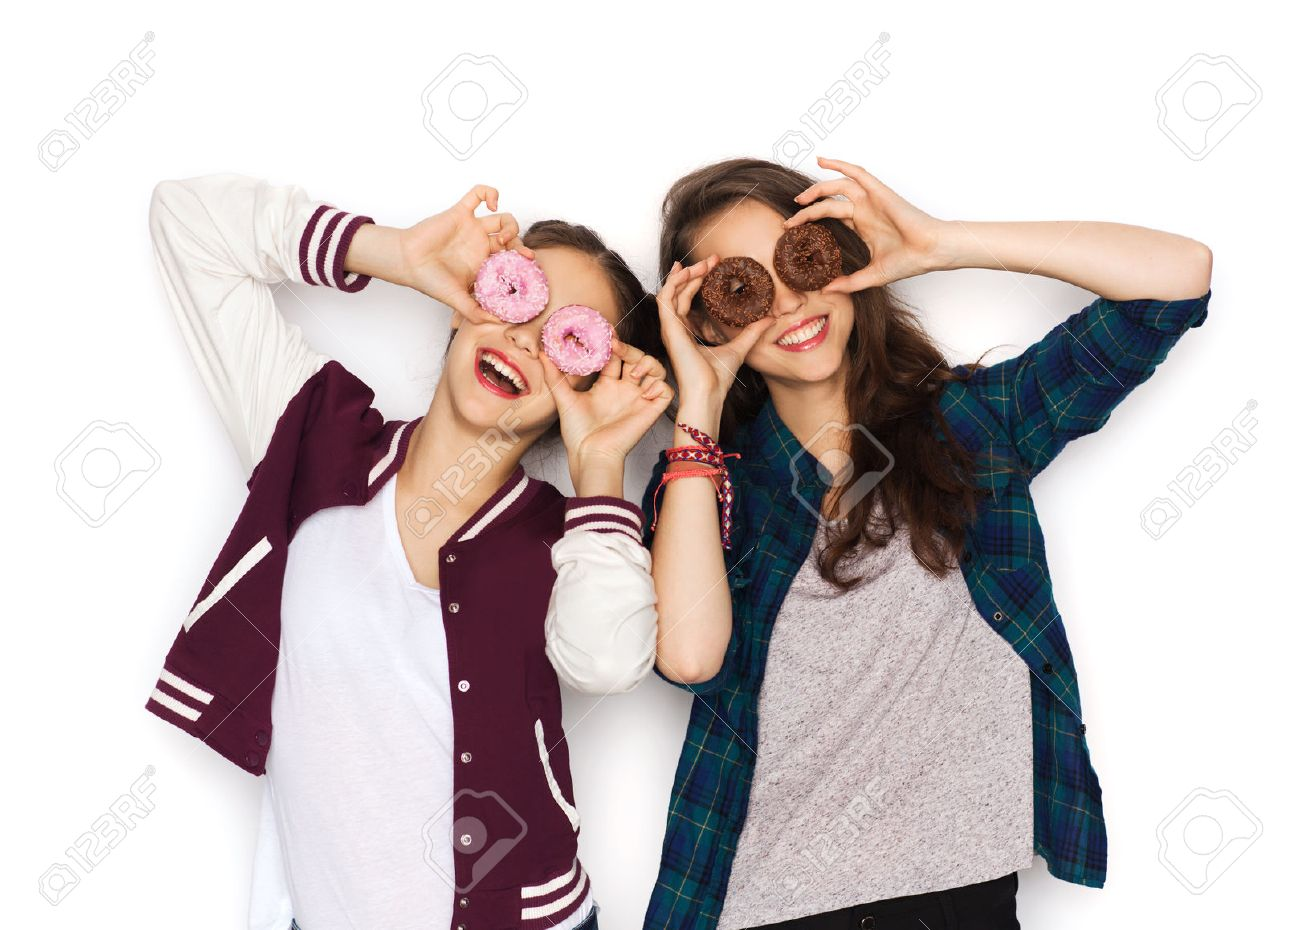 people, friends, teens and friendship concept - happy smiling pretty teenage girls with donuts making faces and having fun - 54864220